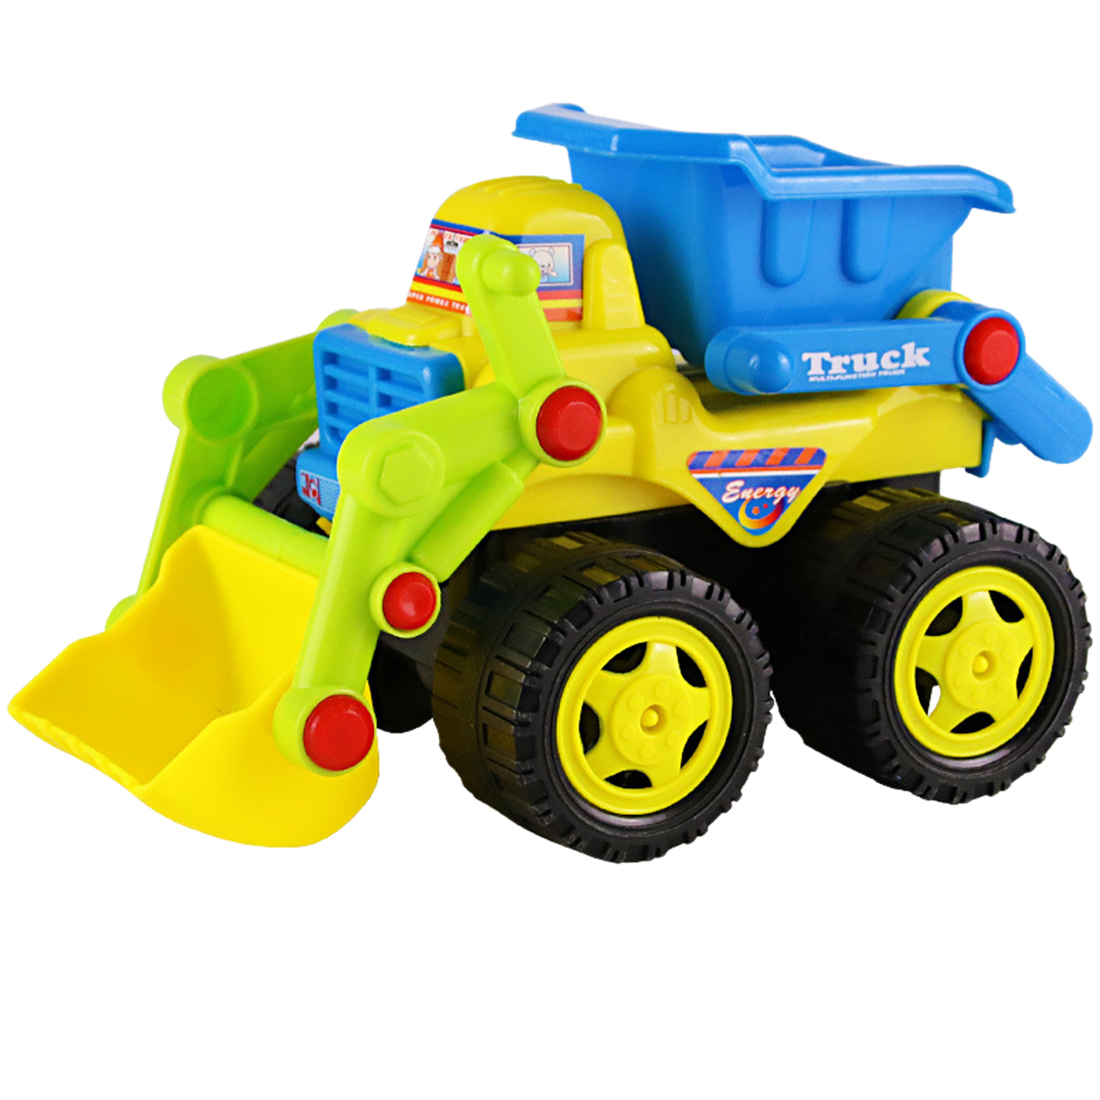 Small Baby Toy Inertia Construction Vehicle Inertia Beach Bulldozer Model Children Playing Beach Sand Tools Toy For Children